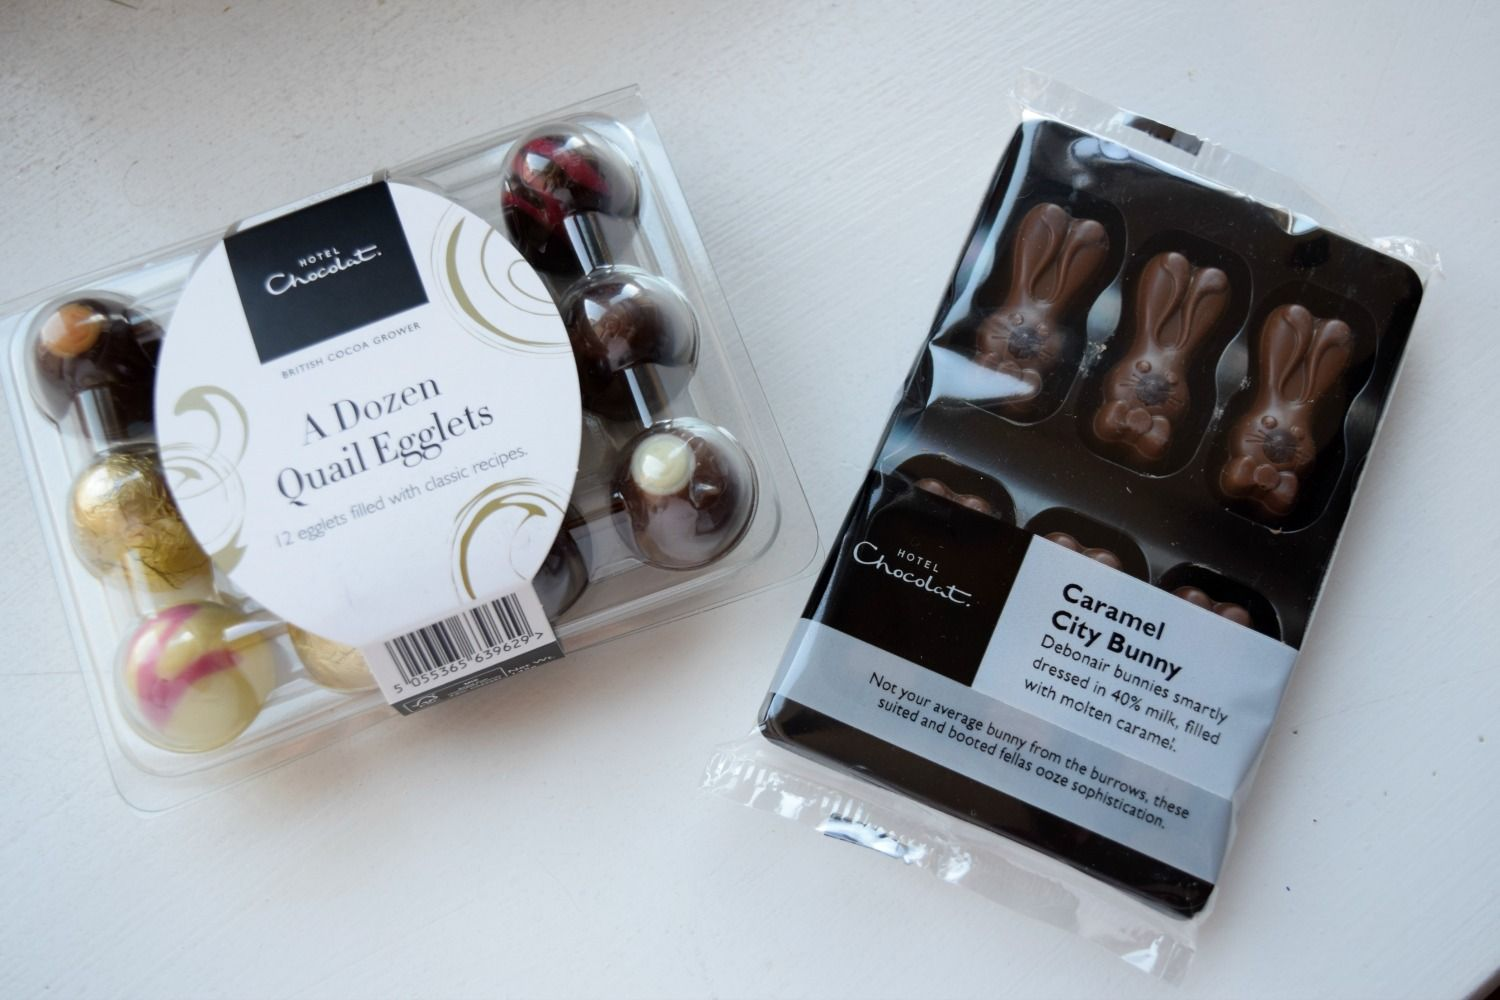 Easter treats from hotel chocolat hotel chocolat easter and egg easter egg range from hotel chocolat easter easteregg chocolate negle Images